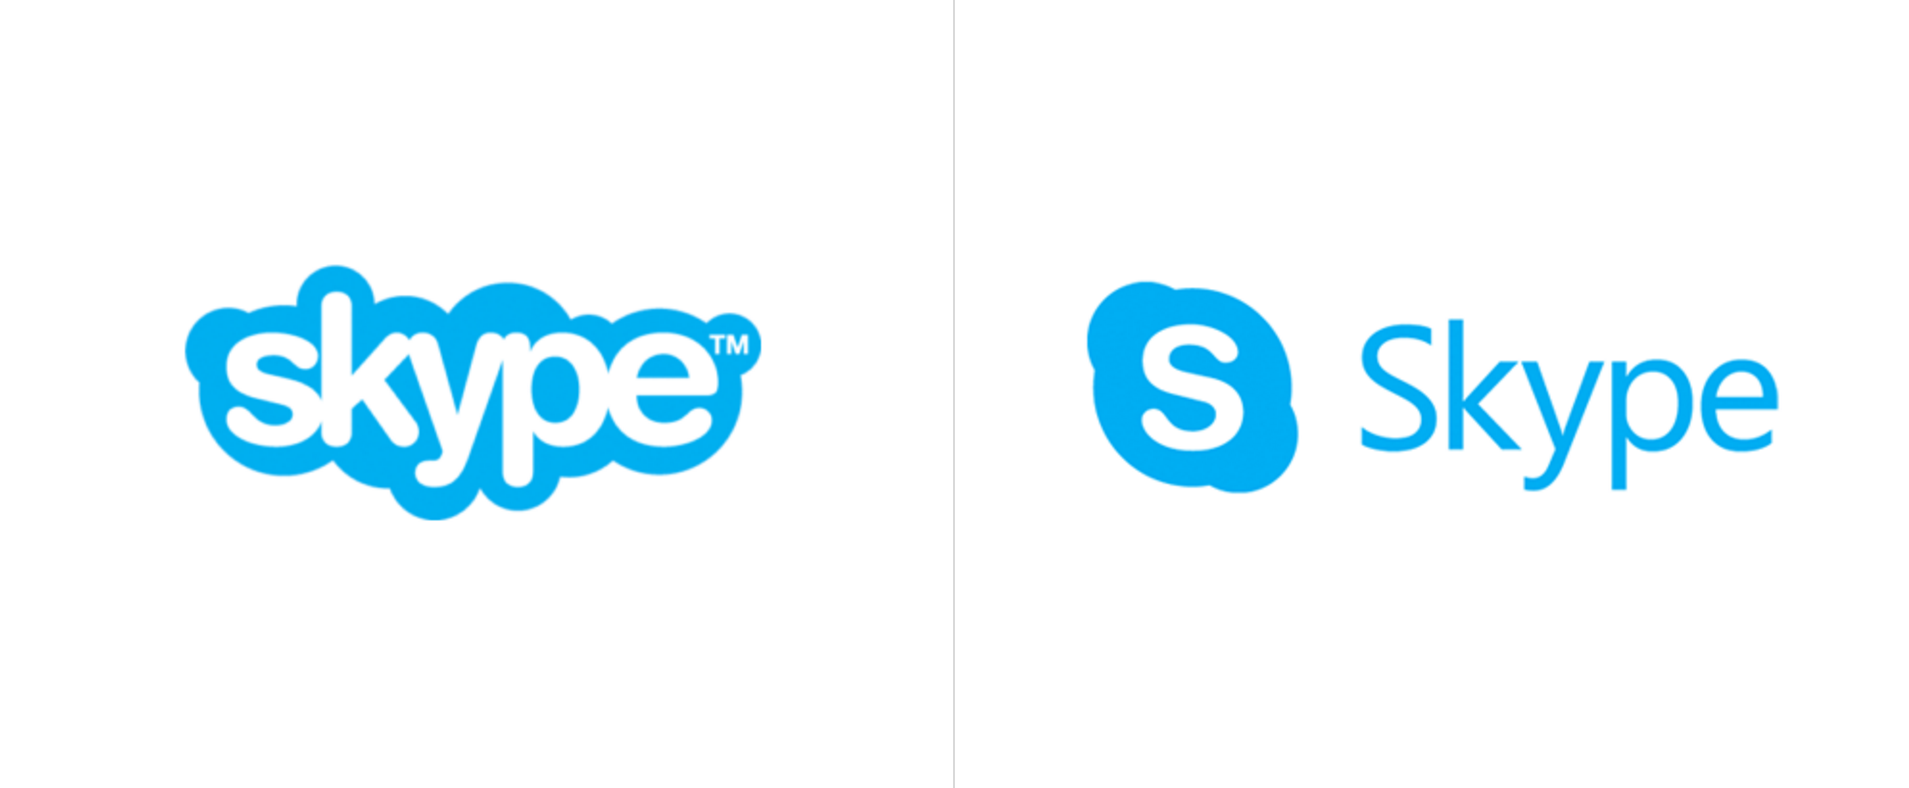 Microsoft S New Skype Logo Ditches The Iconic Clouds The